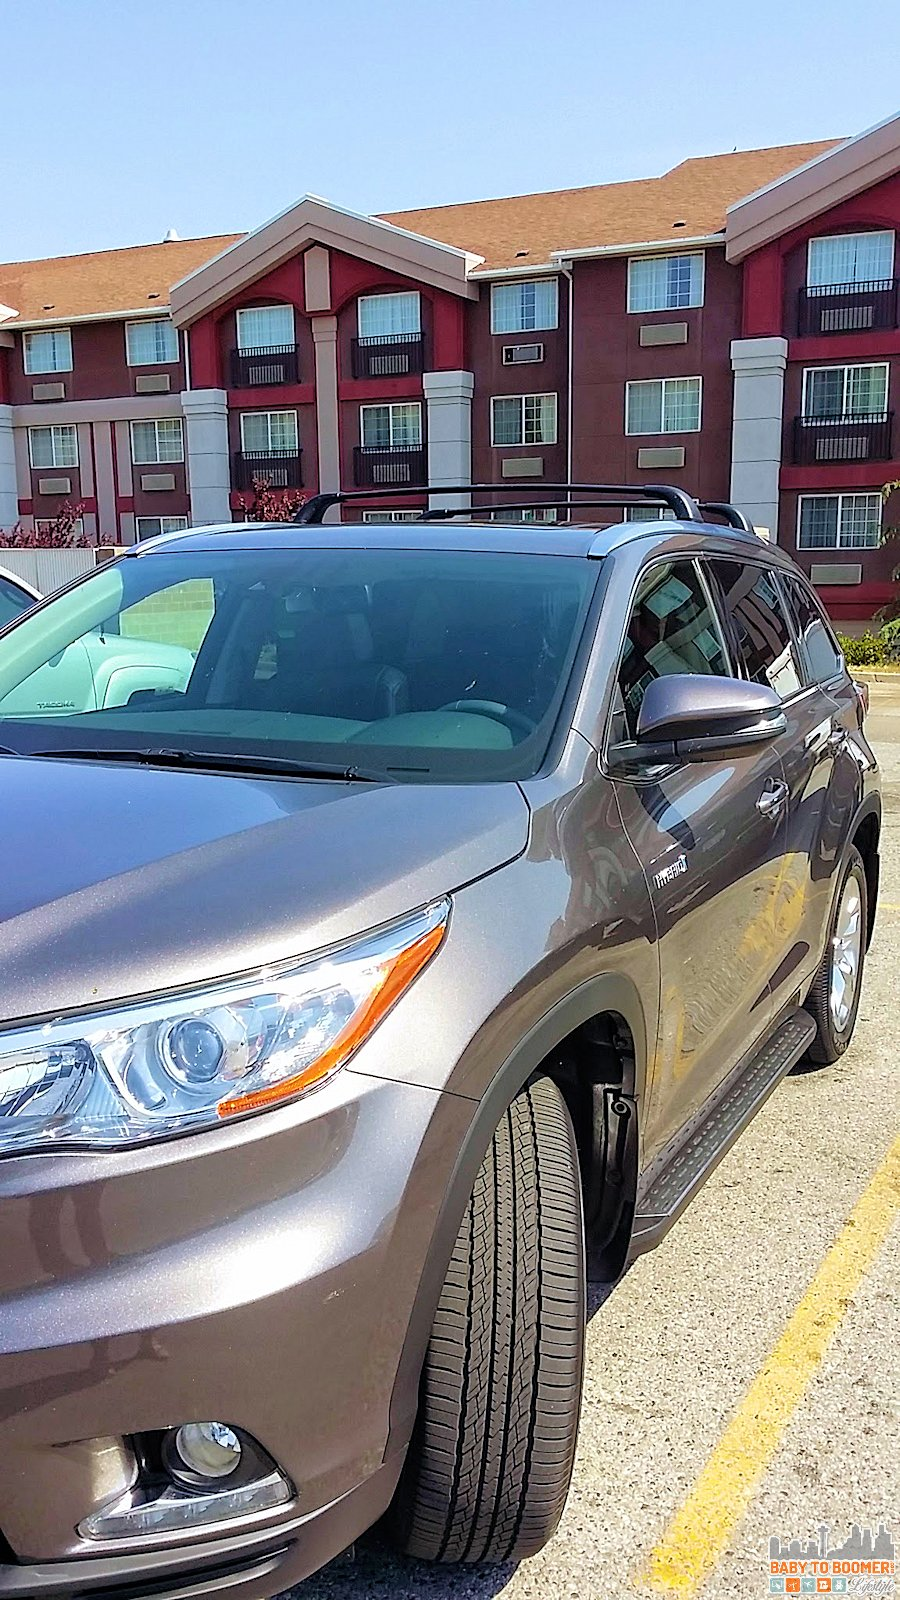 Our car parked outside the Holiday Inn Express in Wenatchee - convenient parking is part of the great experience we had there. - IHG Rewards Club - Earn Points For Your Hotel Stay & #ShareForever Giveaway ad